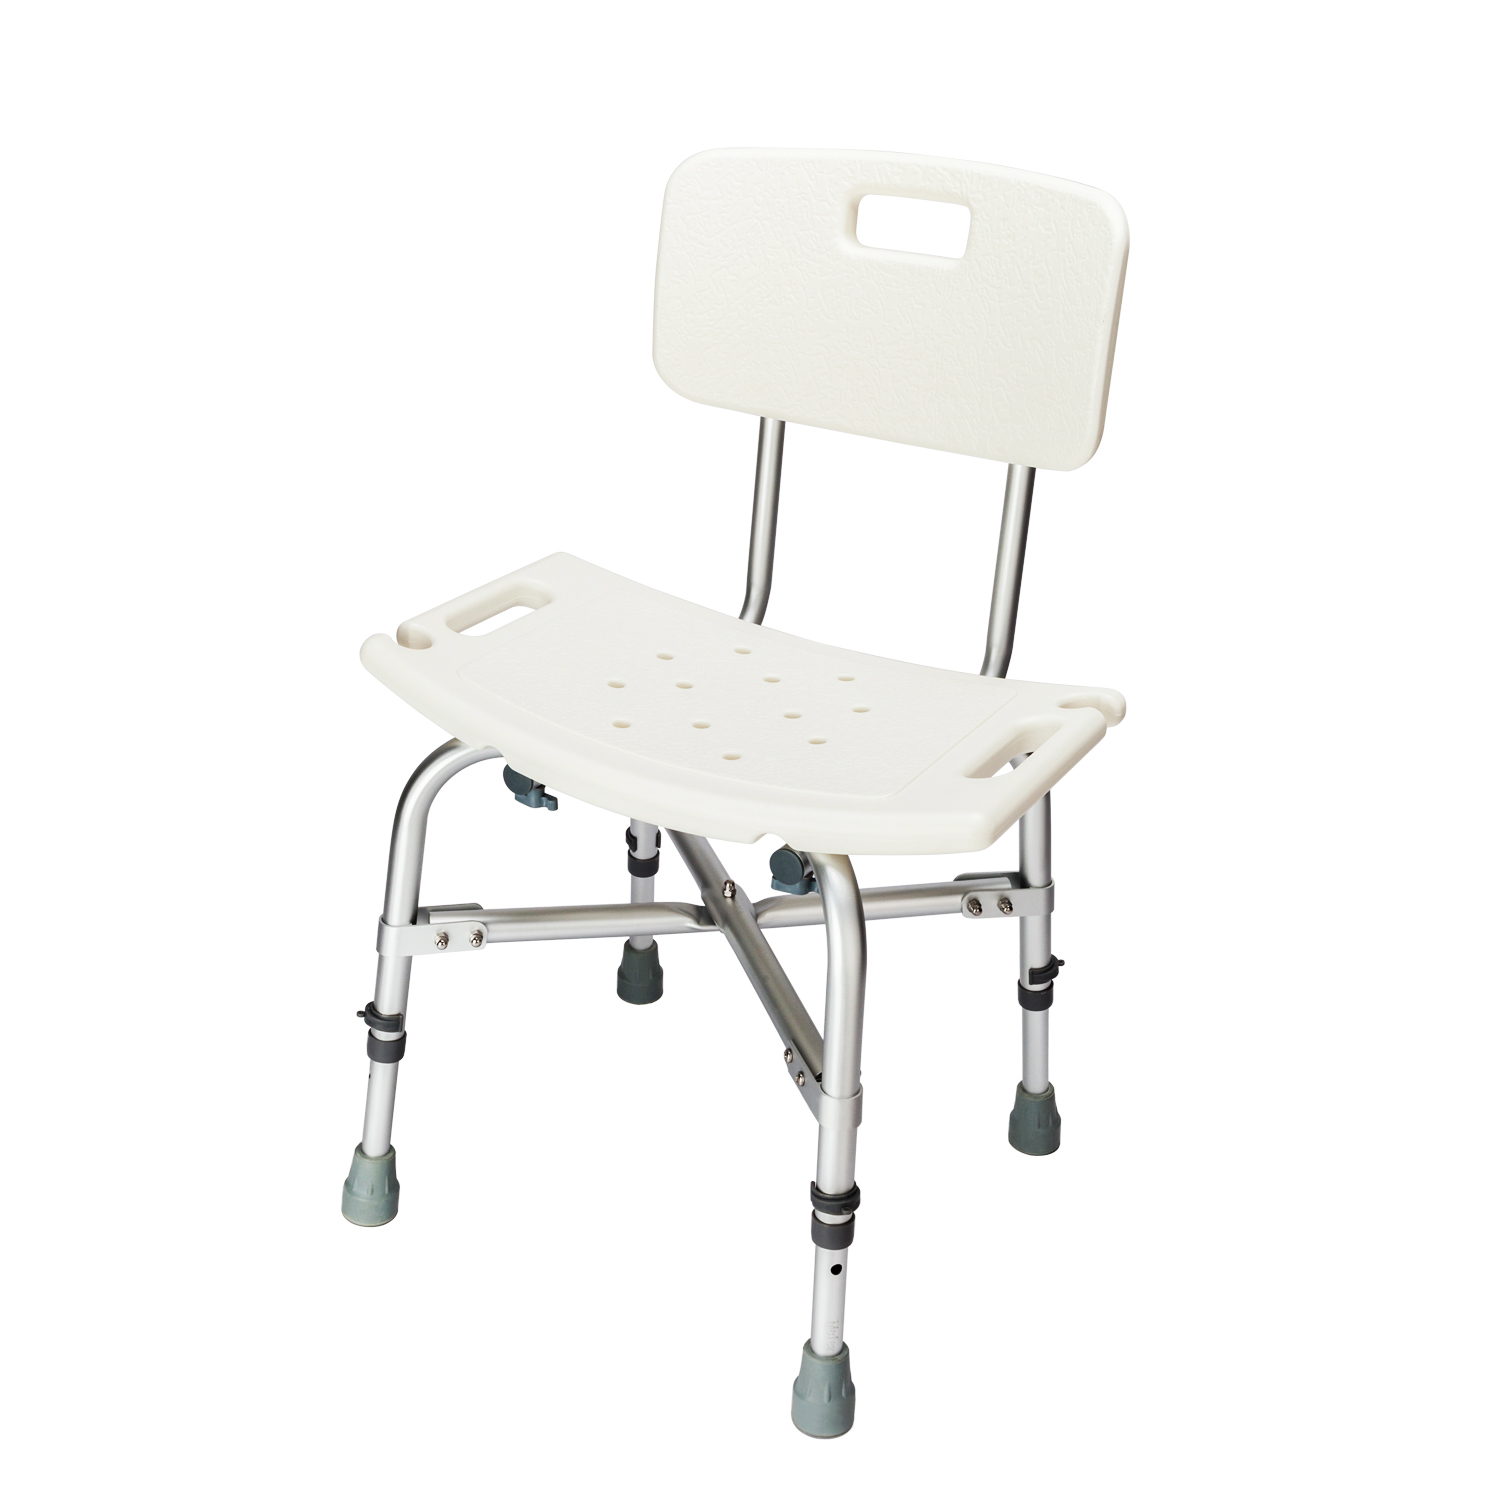 Heavy-duty Elderly Bath Shower Bench Chair Aluminum Alloy Medical Bath Seat Stool With Backrest Bathtub Chair For Old - US Stock